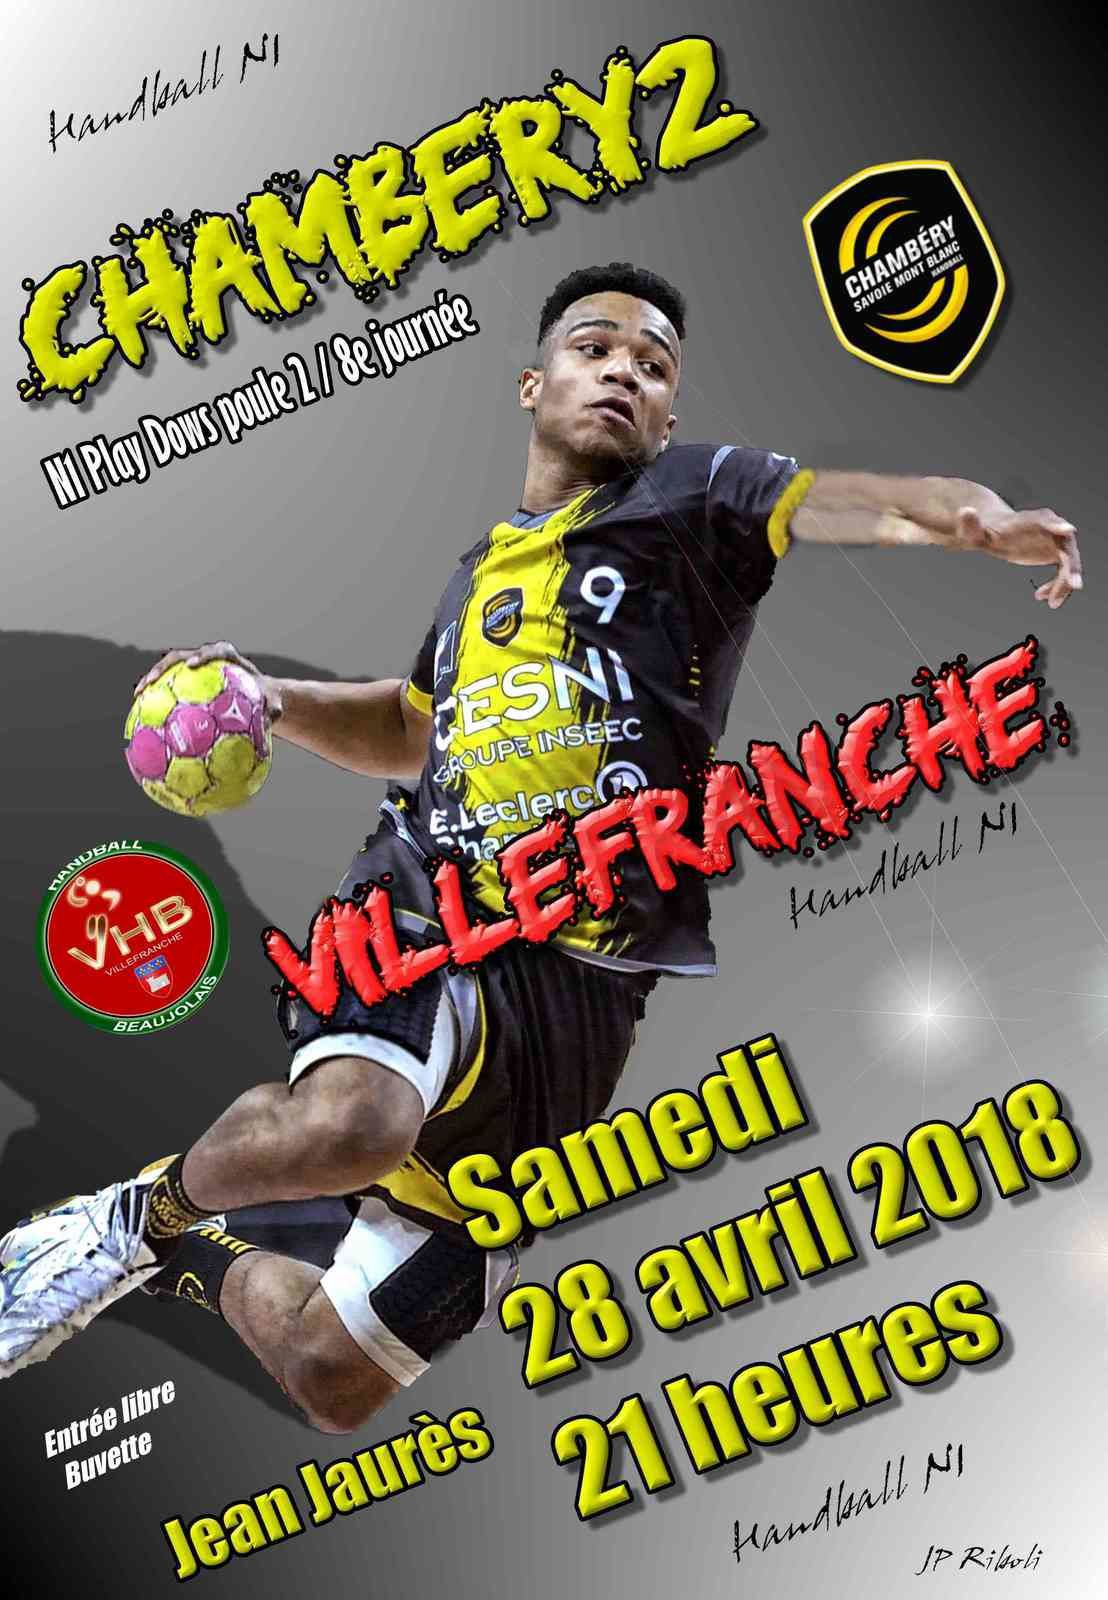 CHAMBERY les matches du week-end 28 et 29 avril 2018